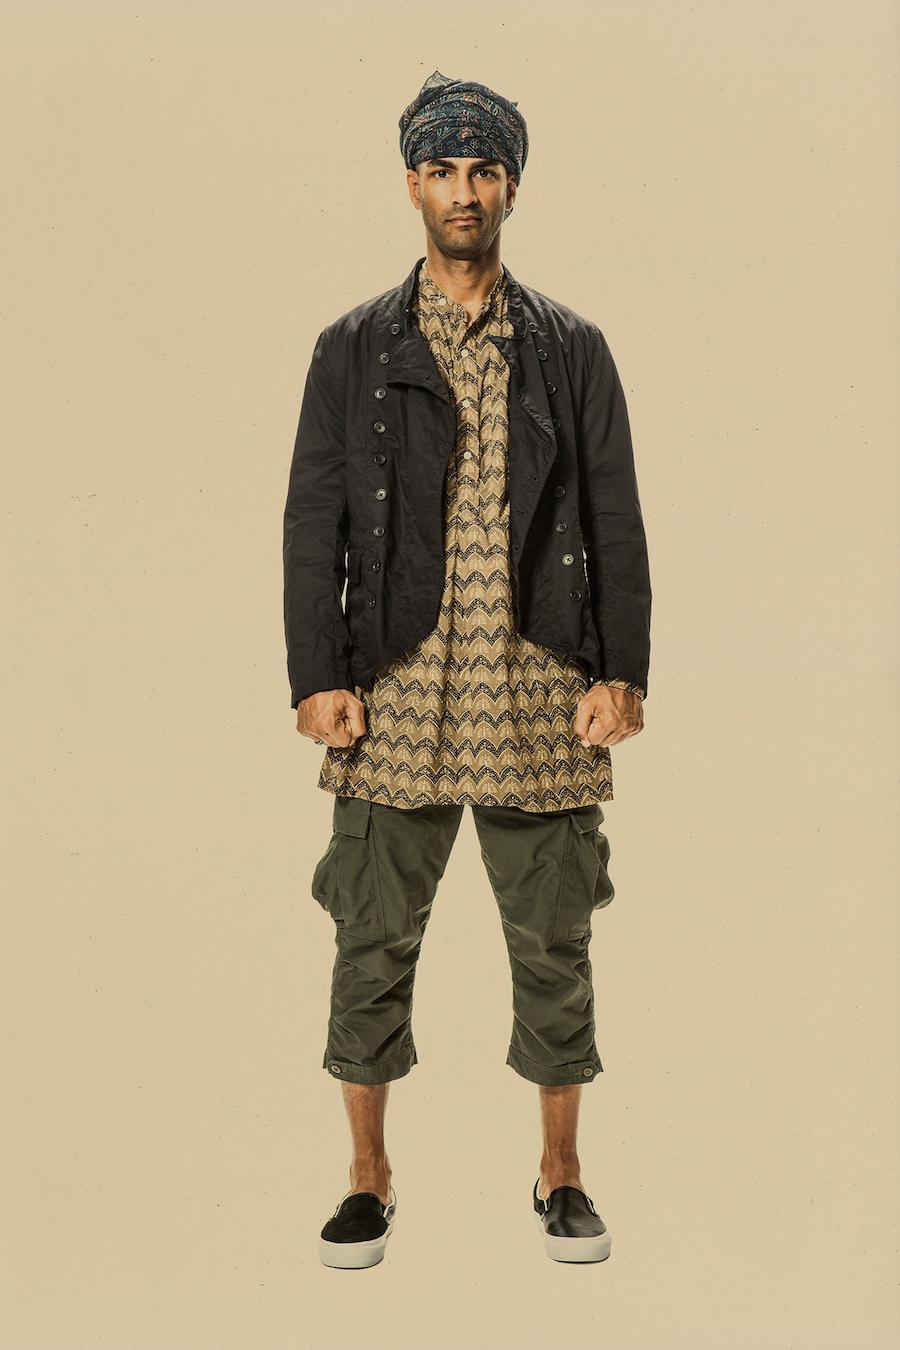 engineered-garments-springsummer-2015-collection-09.jpg